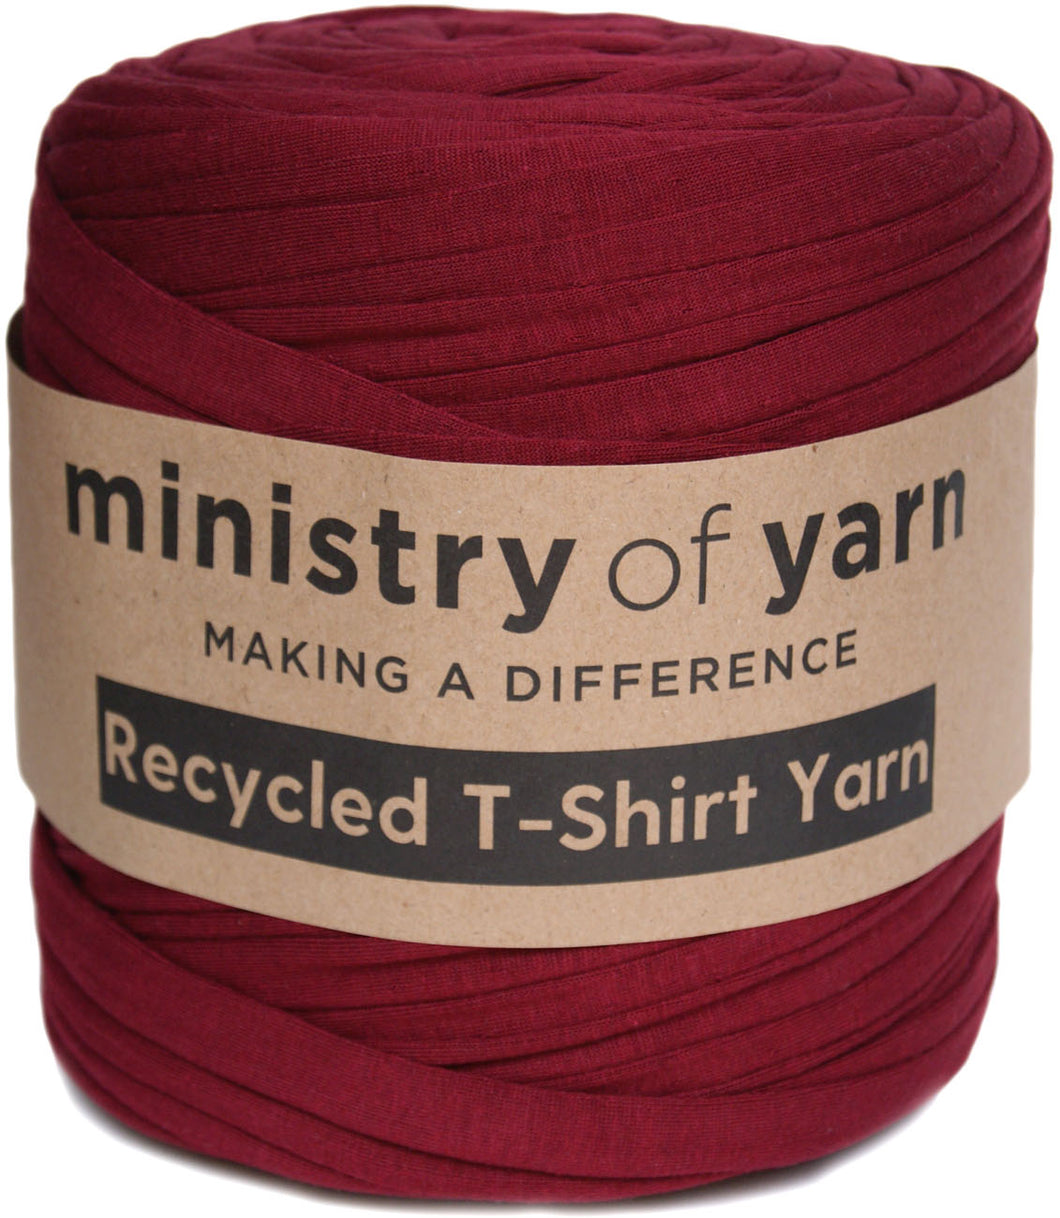 dark red socially responsible recycled t-shirt yarn Australia